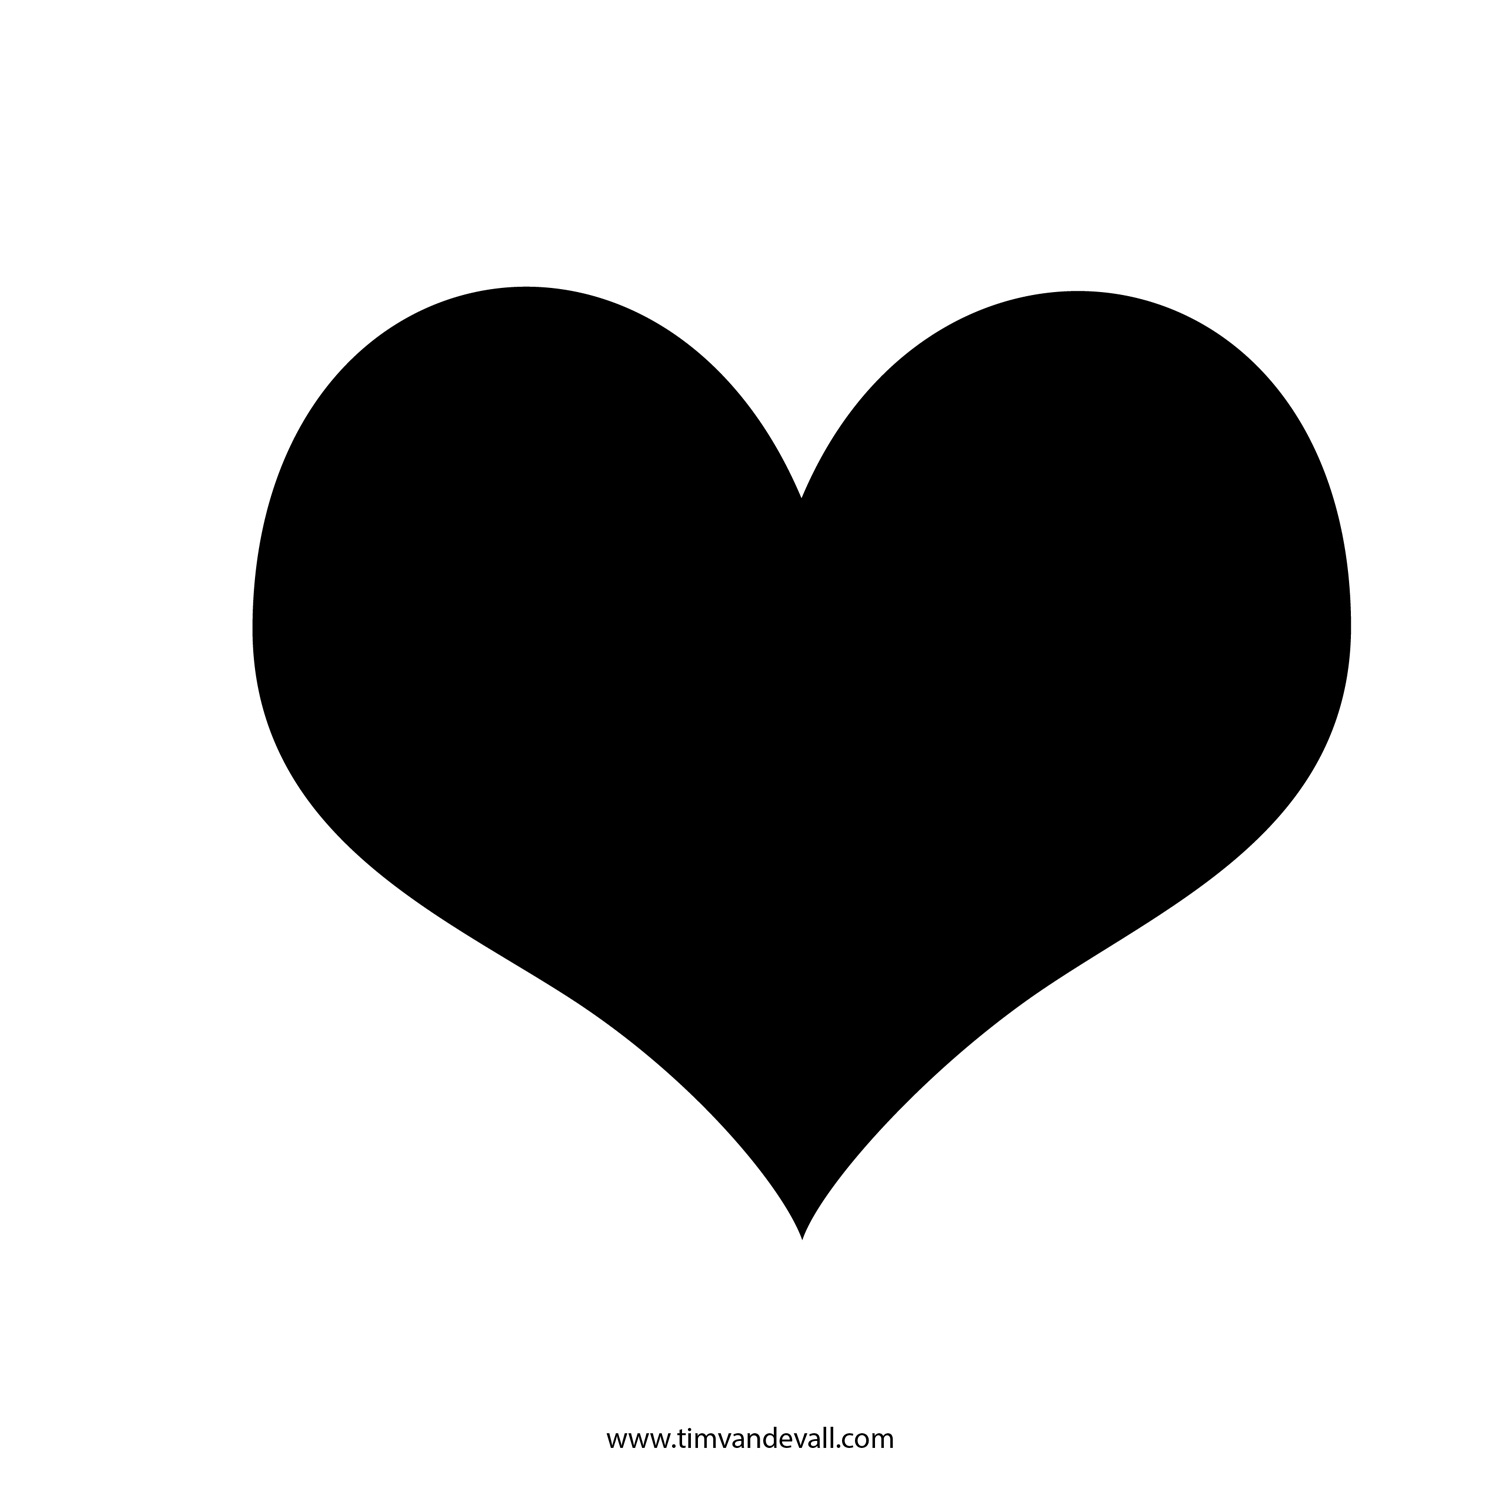 Free Silhouette Of Heart, Download Free Clip Art, Free Clip